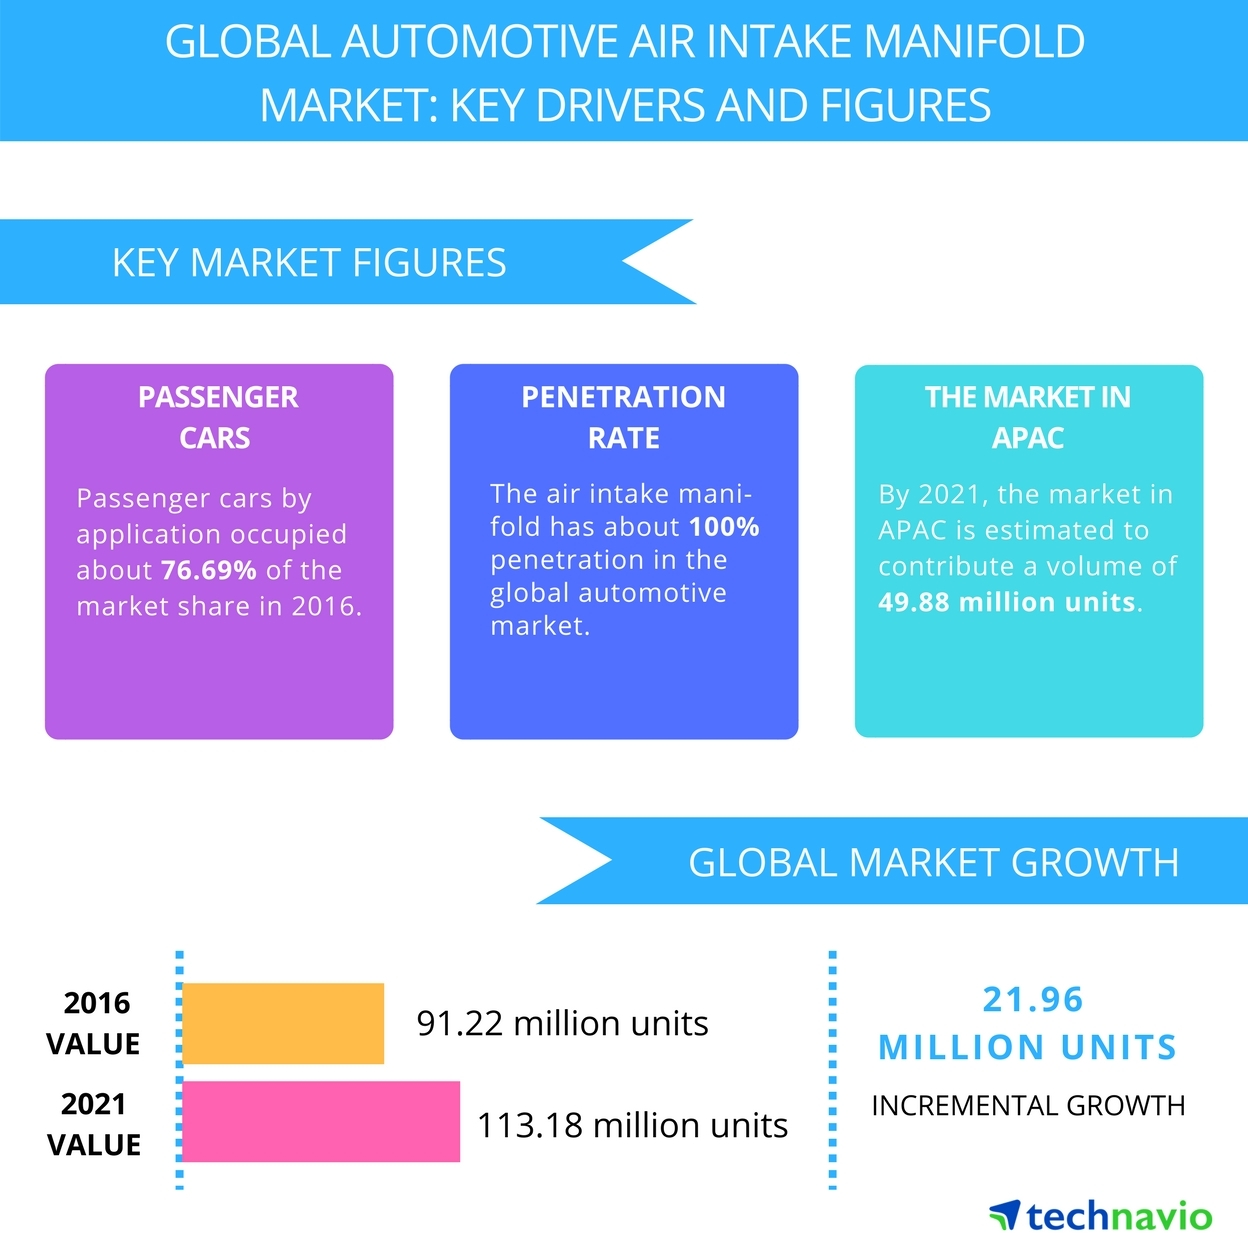 Technavio has published a new report on the global automotive air intake manifold market from 2017-2021. (Graphic: Business Wire)